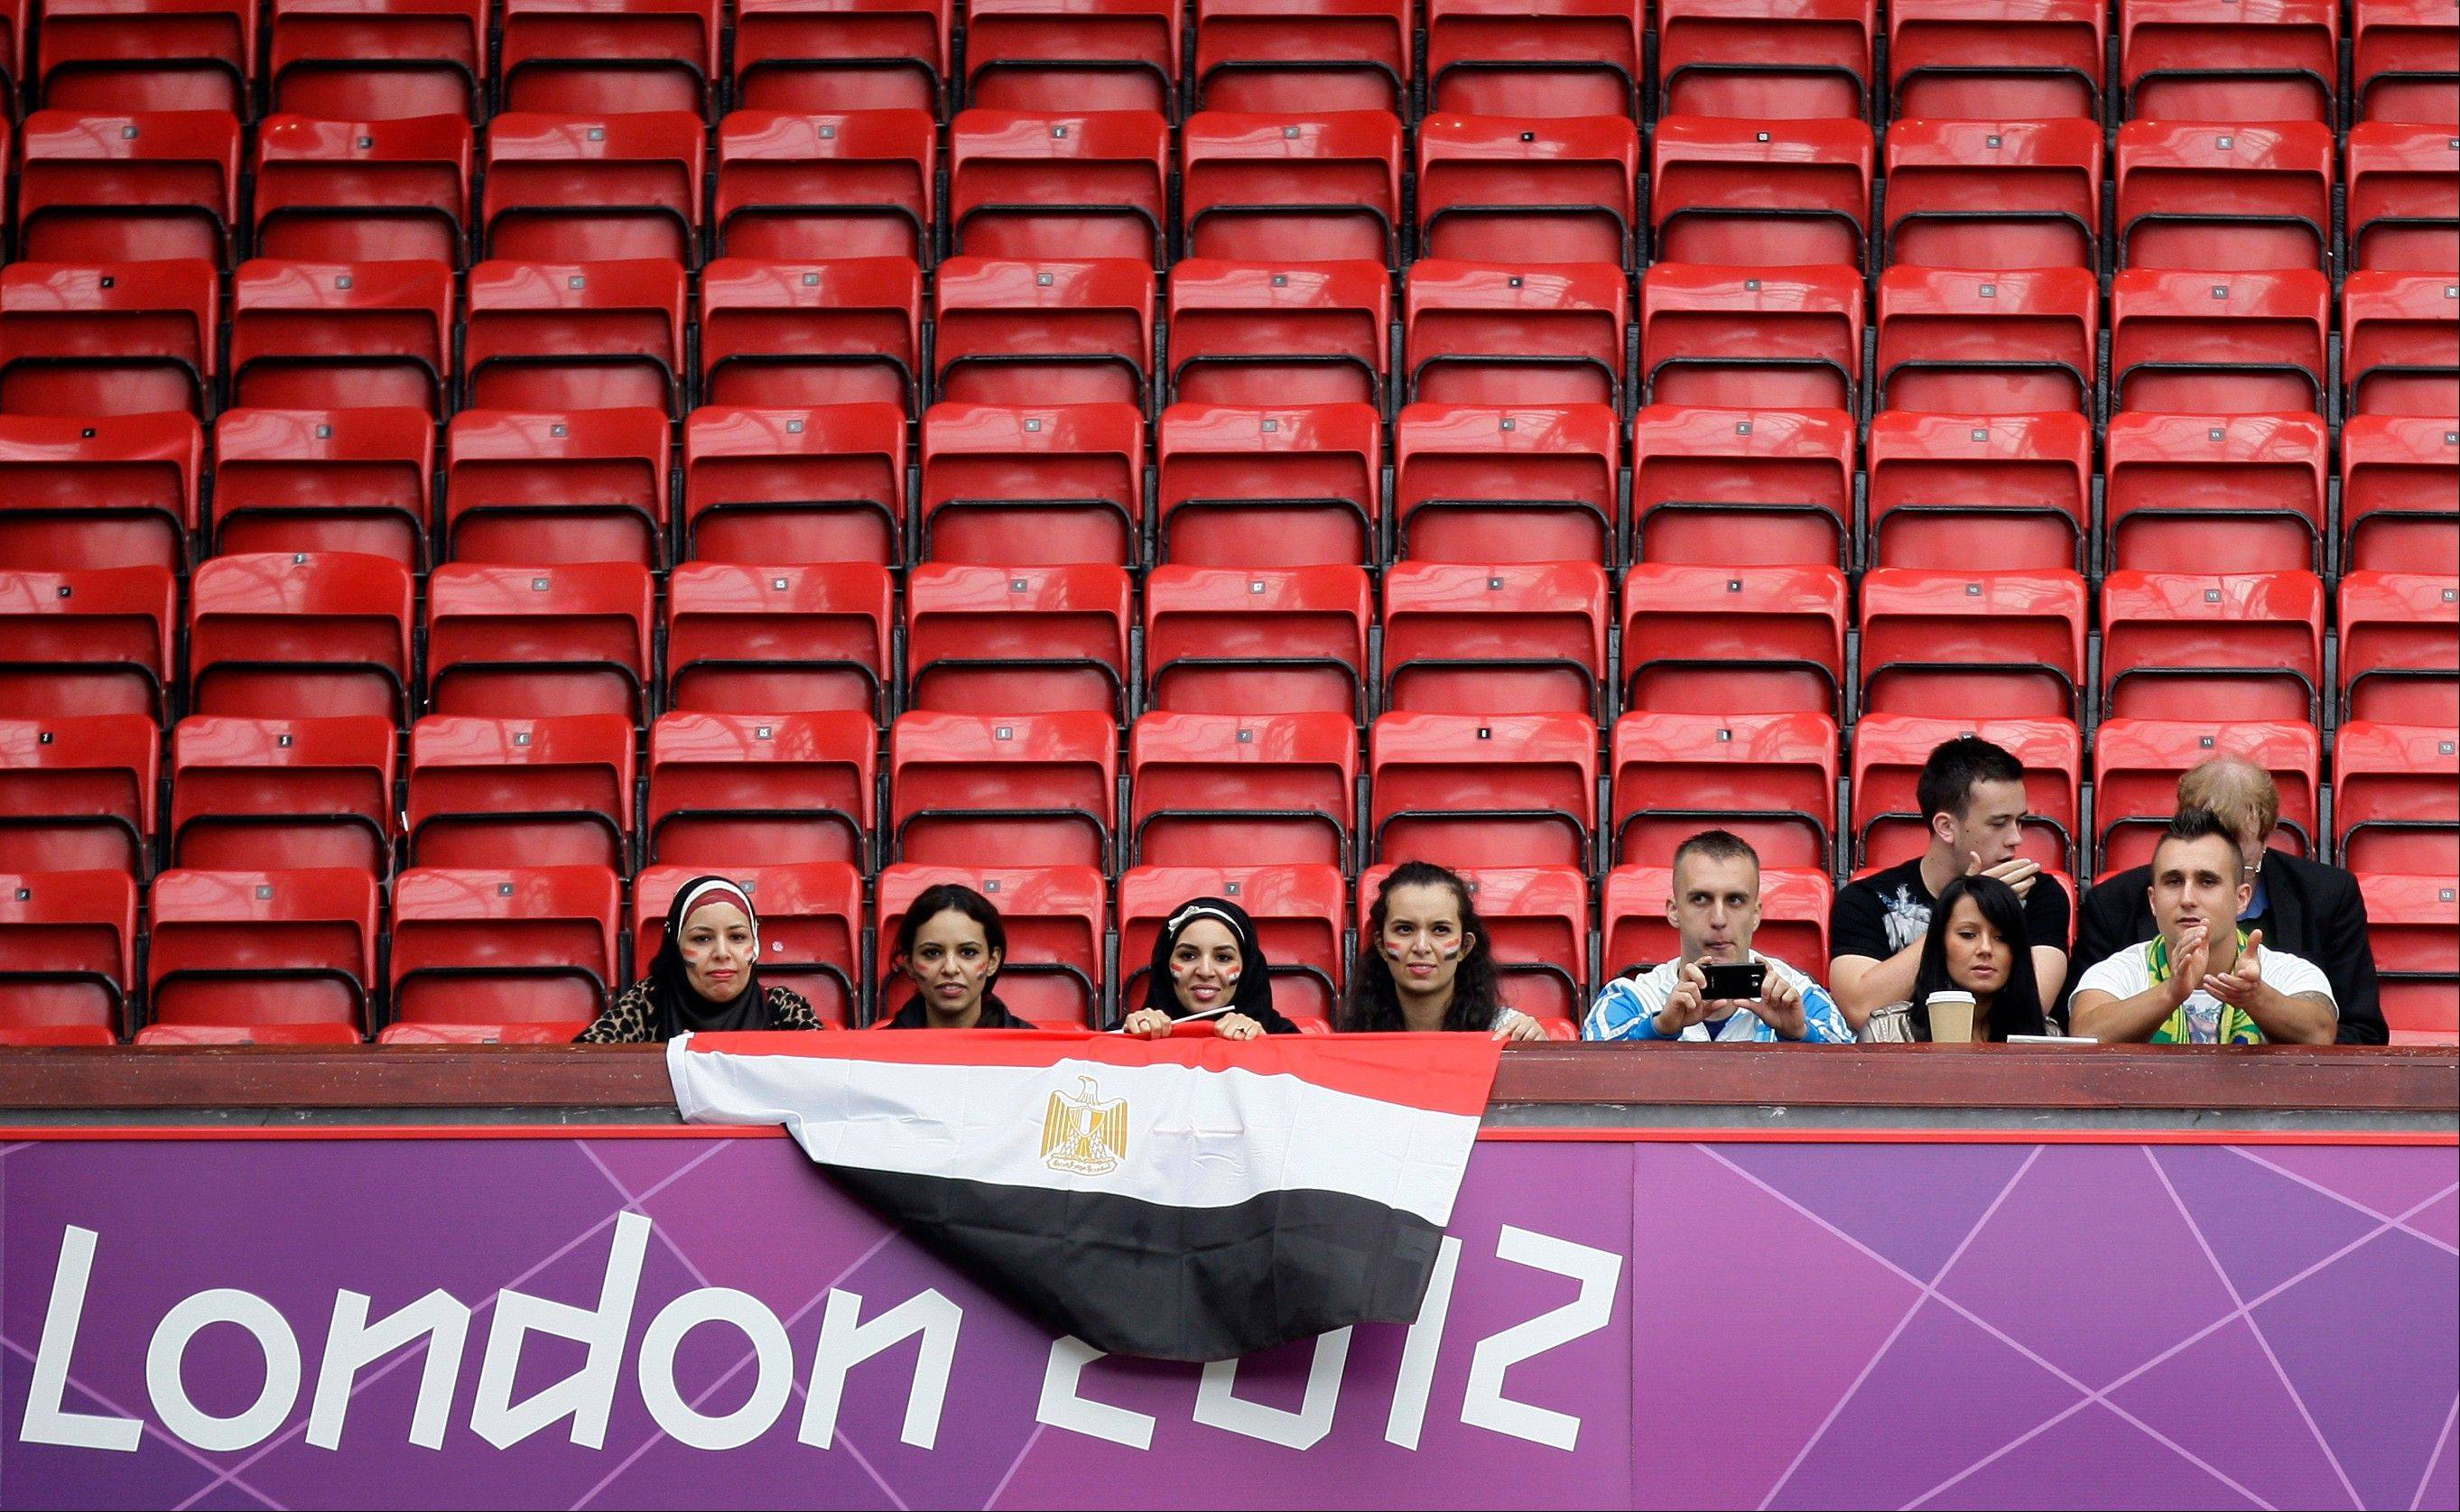 Spectators sit amongst empty seats before Egypt's group C men's soccer match against New Zealand at the London 2012 Summer Olympics, Sunday at Old Trafford Stadium in Manchester, England.